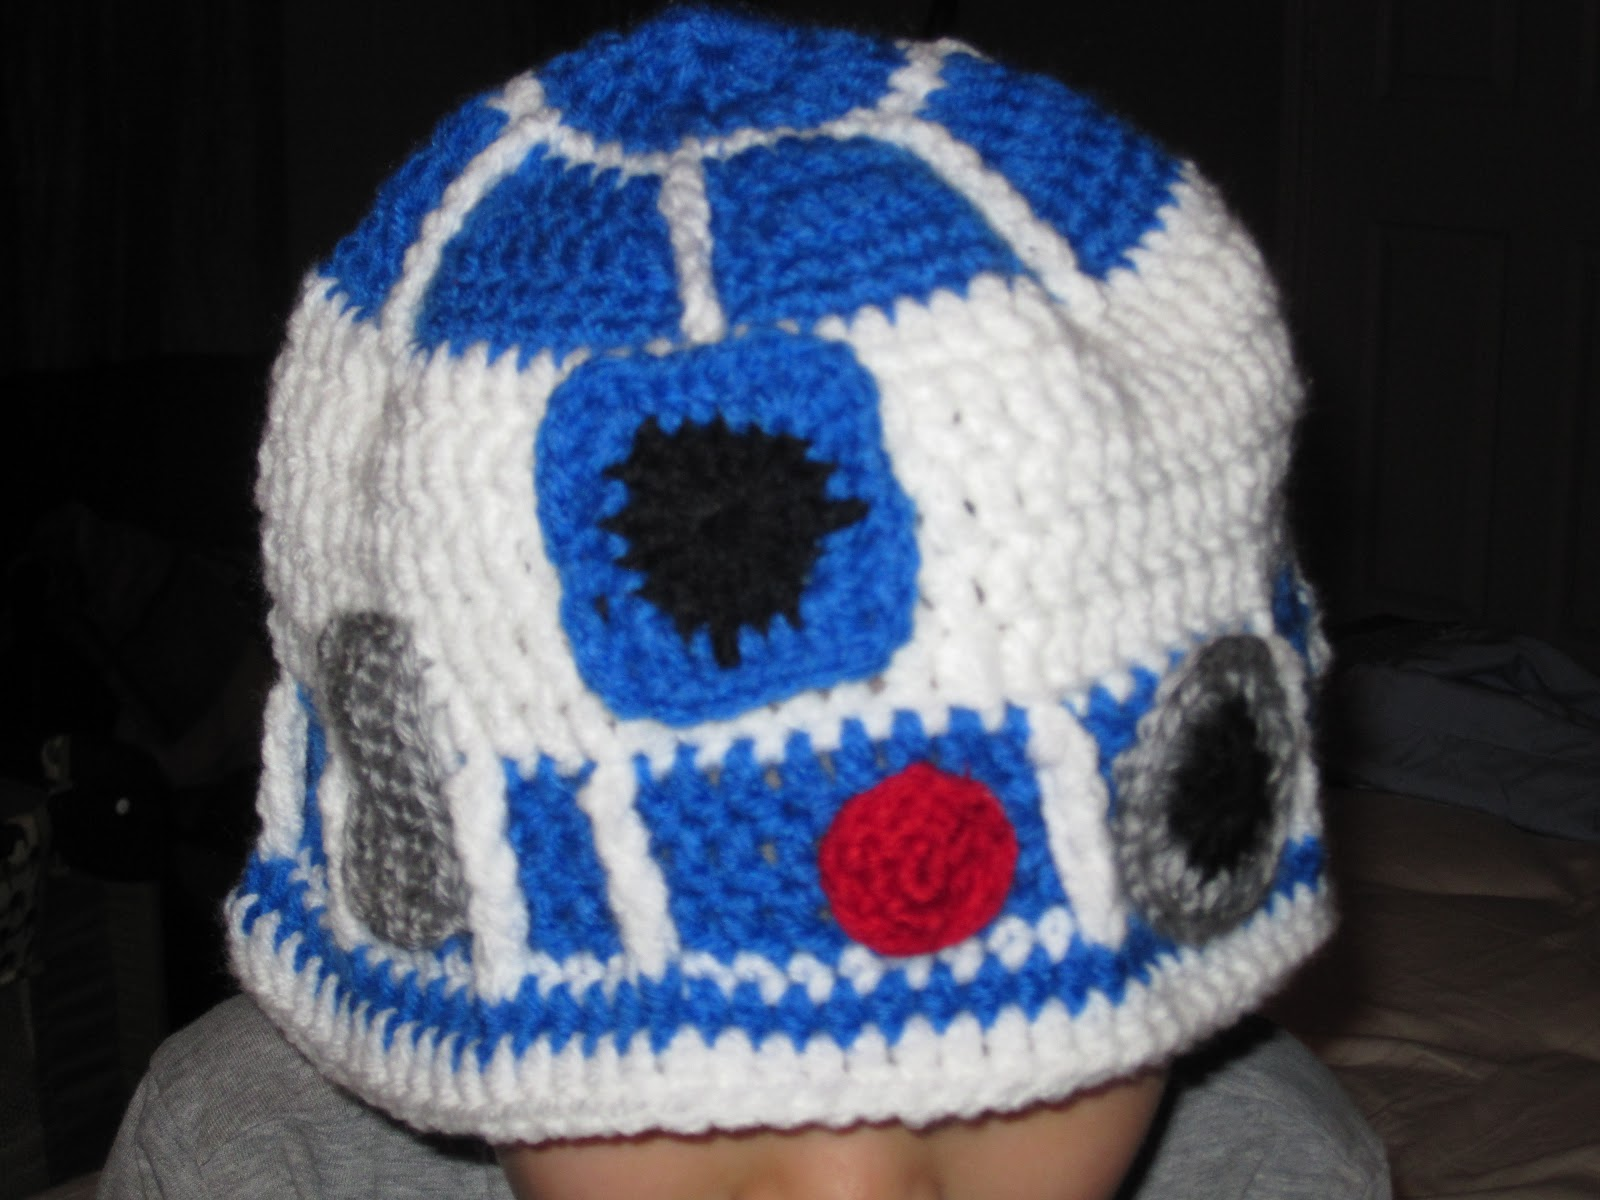 Janettes Crafty Minutes Crochet R2d2